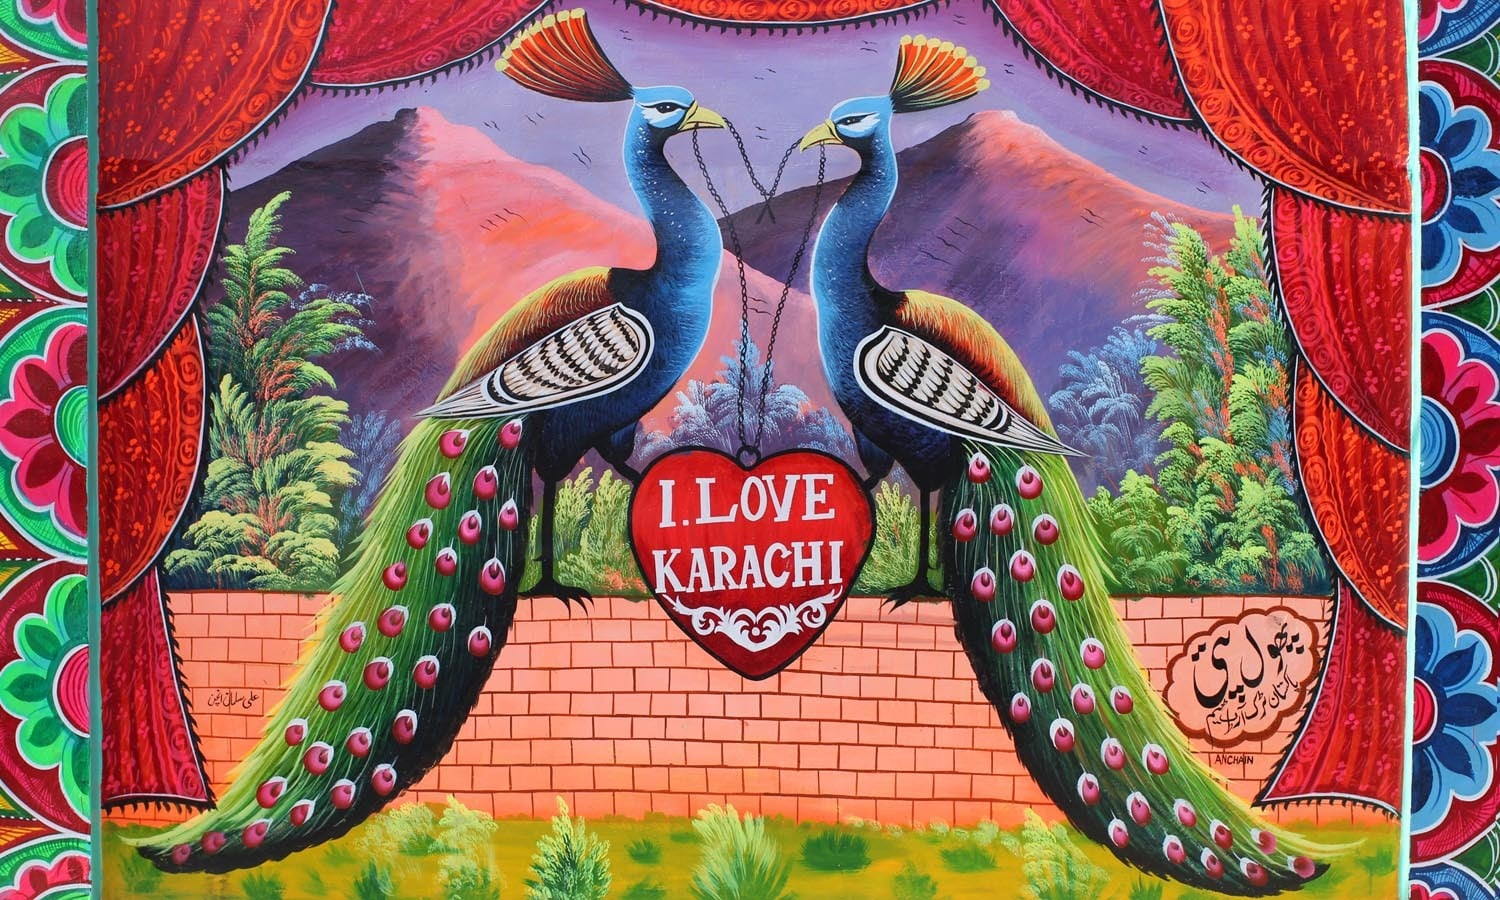 5562d225dbaa2?r1826278952 - When hate on the wall disappears in Karachi